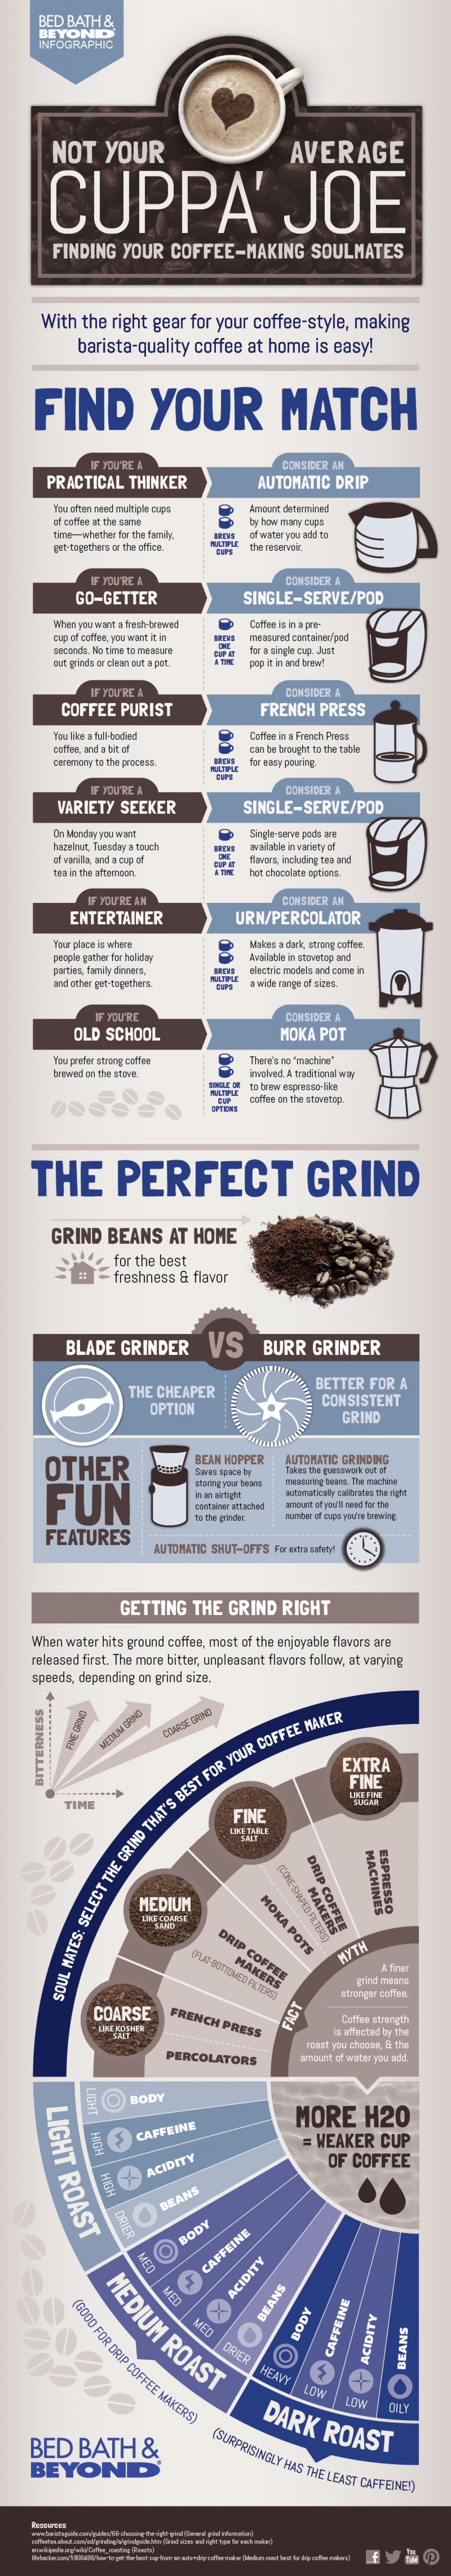 Not Your Average Cuppa' Joe Infographic